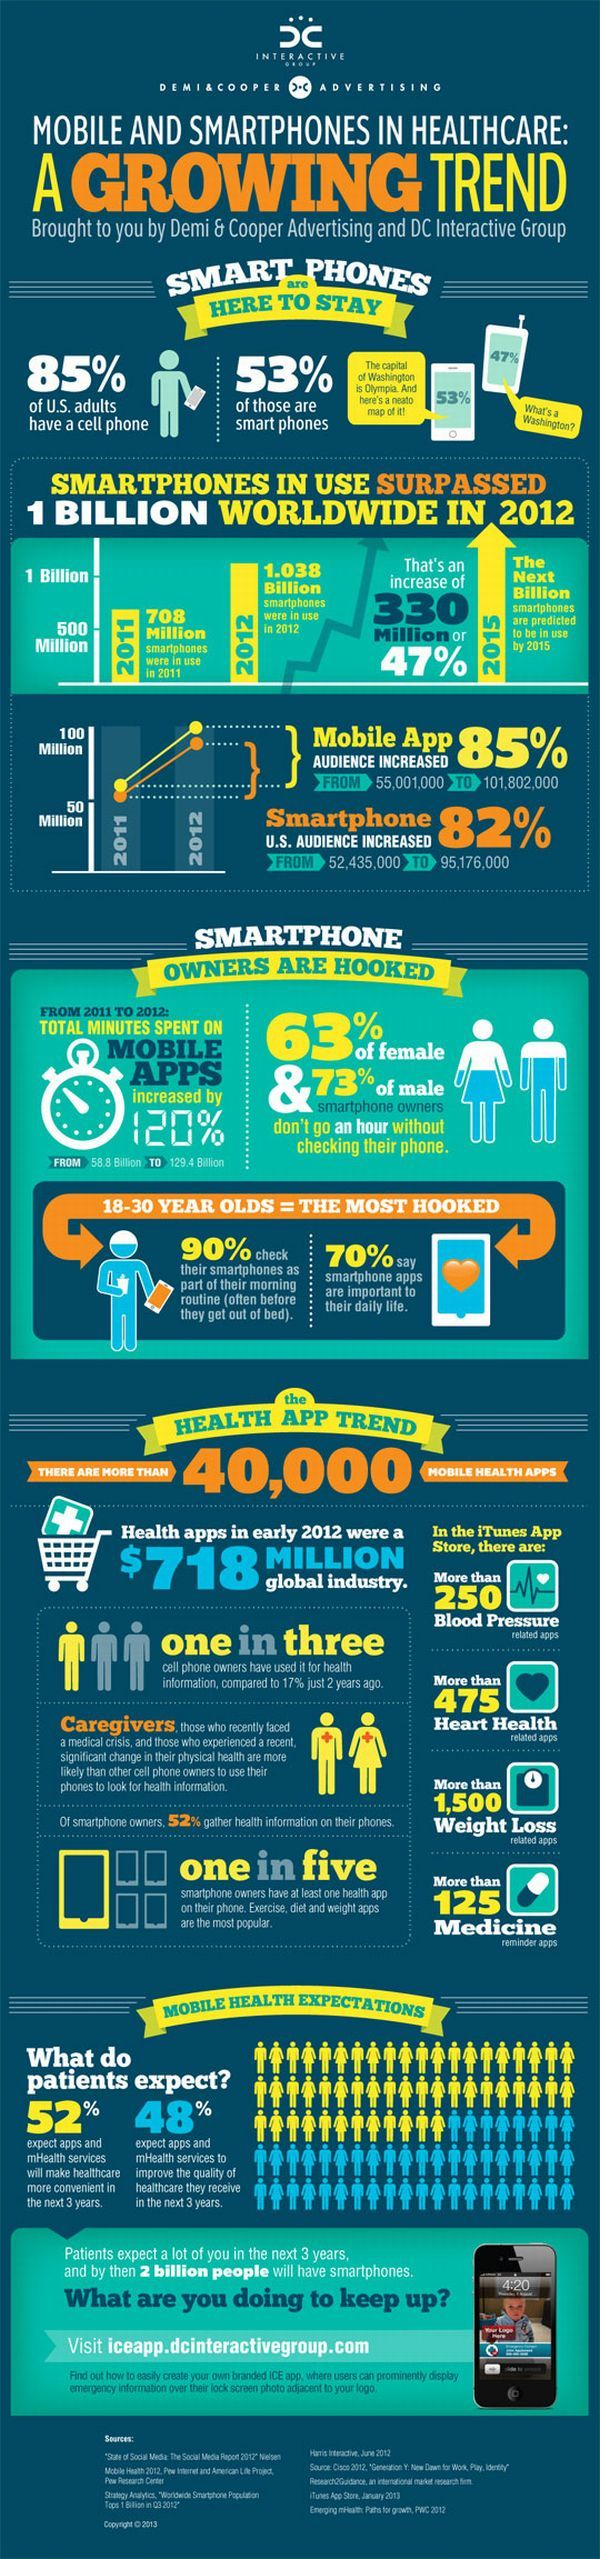 With the skyrocketing of smartphone use, #mhealth apps and patient involvement in care, patients will be expecting a lot of providers in the next 3 years. | Mobile and smartphones in healthcare: a growing trend #Infographic via @Elena Kovyrzina Navarro Loi Smith Care Communication News